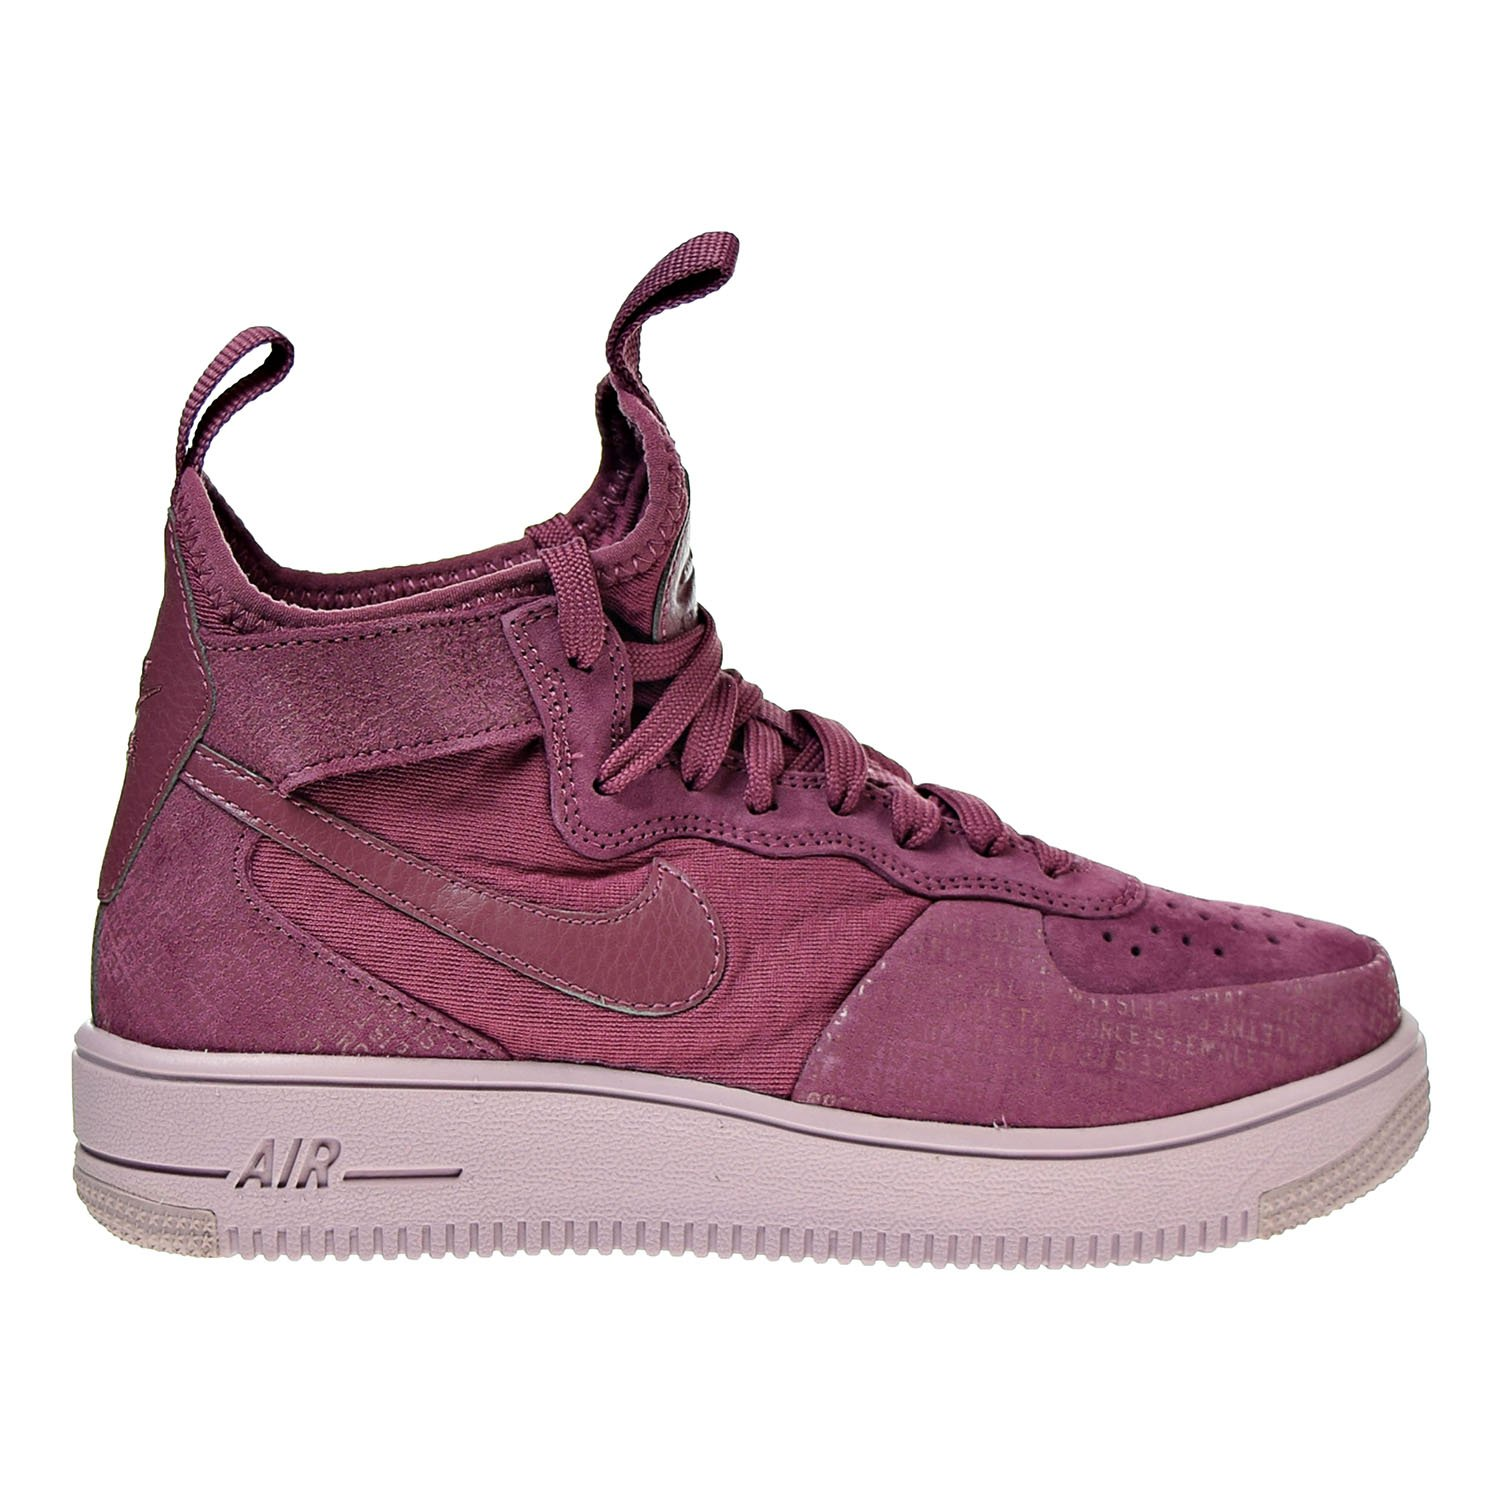 low priced a2587 caffe NIKE Air Force 1 Ultraforce Mid Fif Womens Shoes Vintage Wine aj1701-600  Pink Size 8.5 UK Amazon.co.uk Shoes  Bags